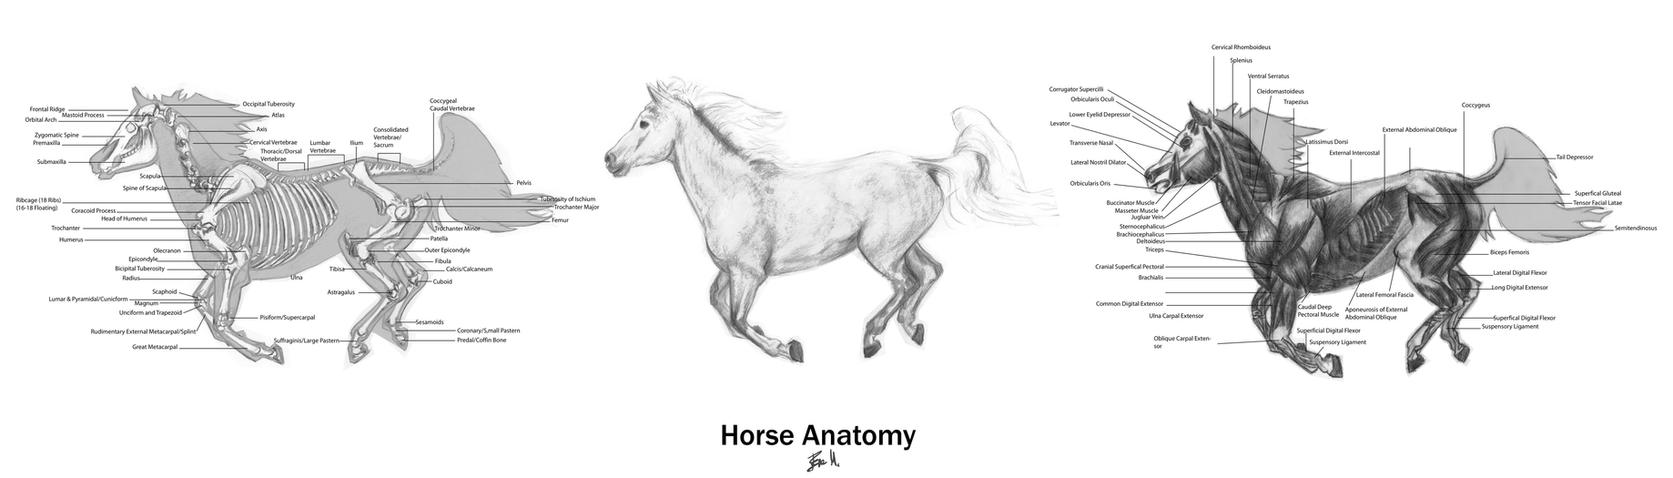 Animal Anatomy: Horse 01 by 89ravenclaw on DeviantArt